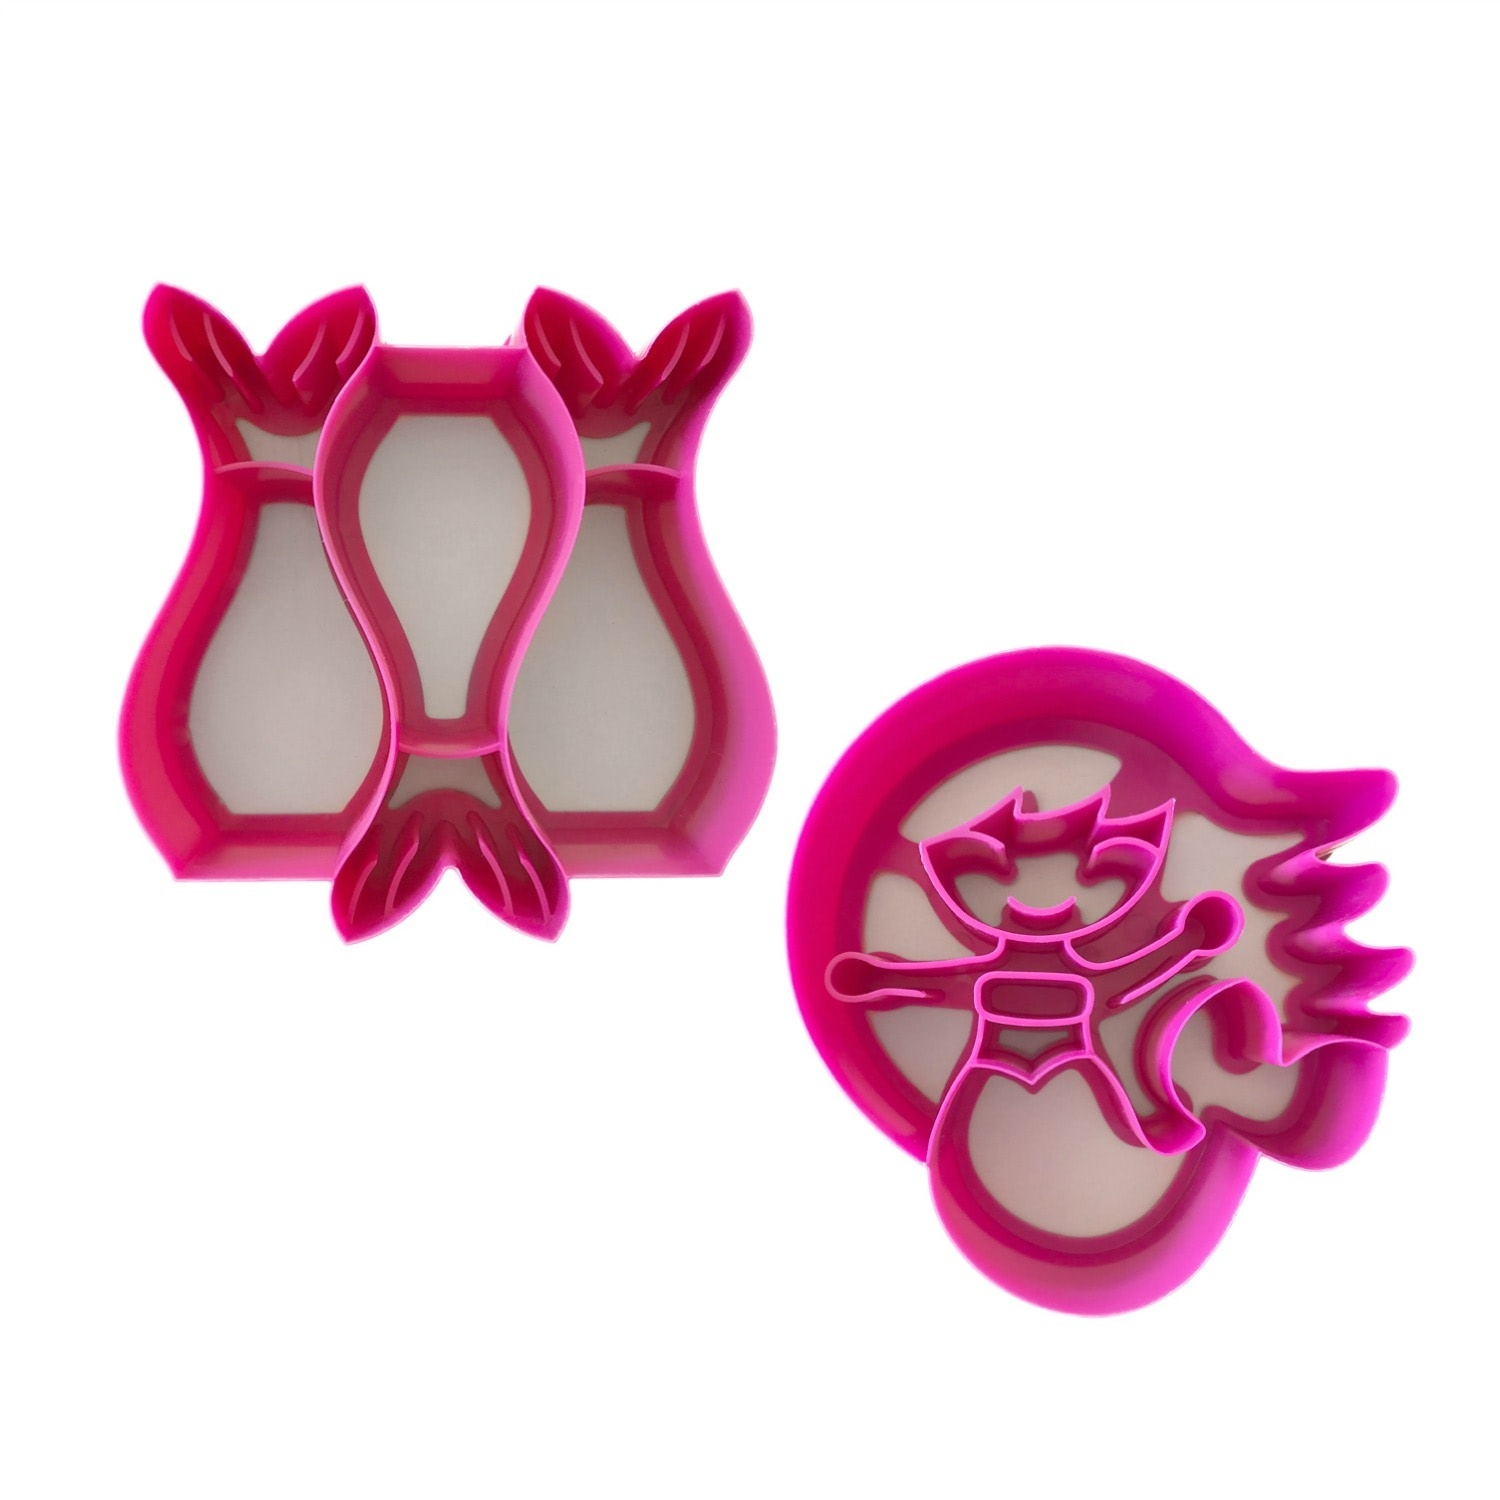 Lunch Punch Sandwich Cutters - Meermaid-1